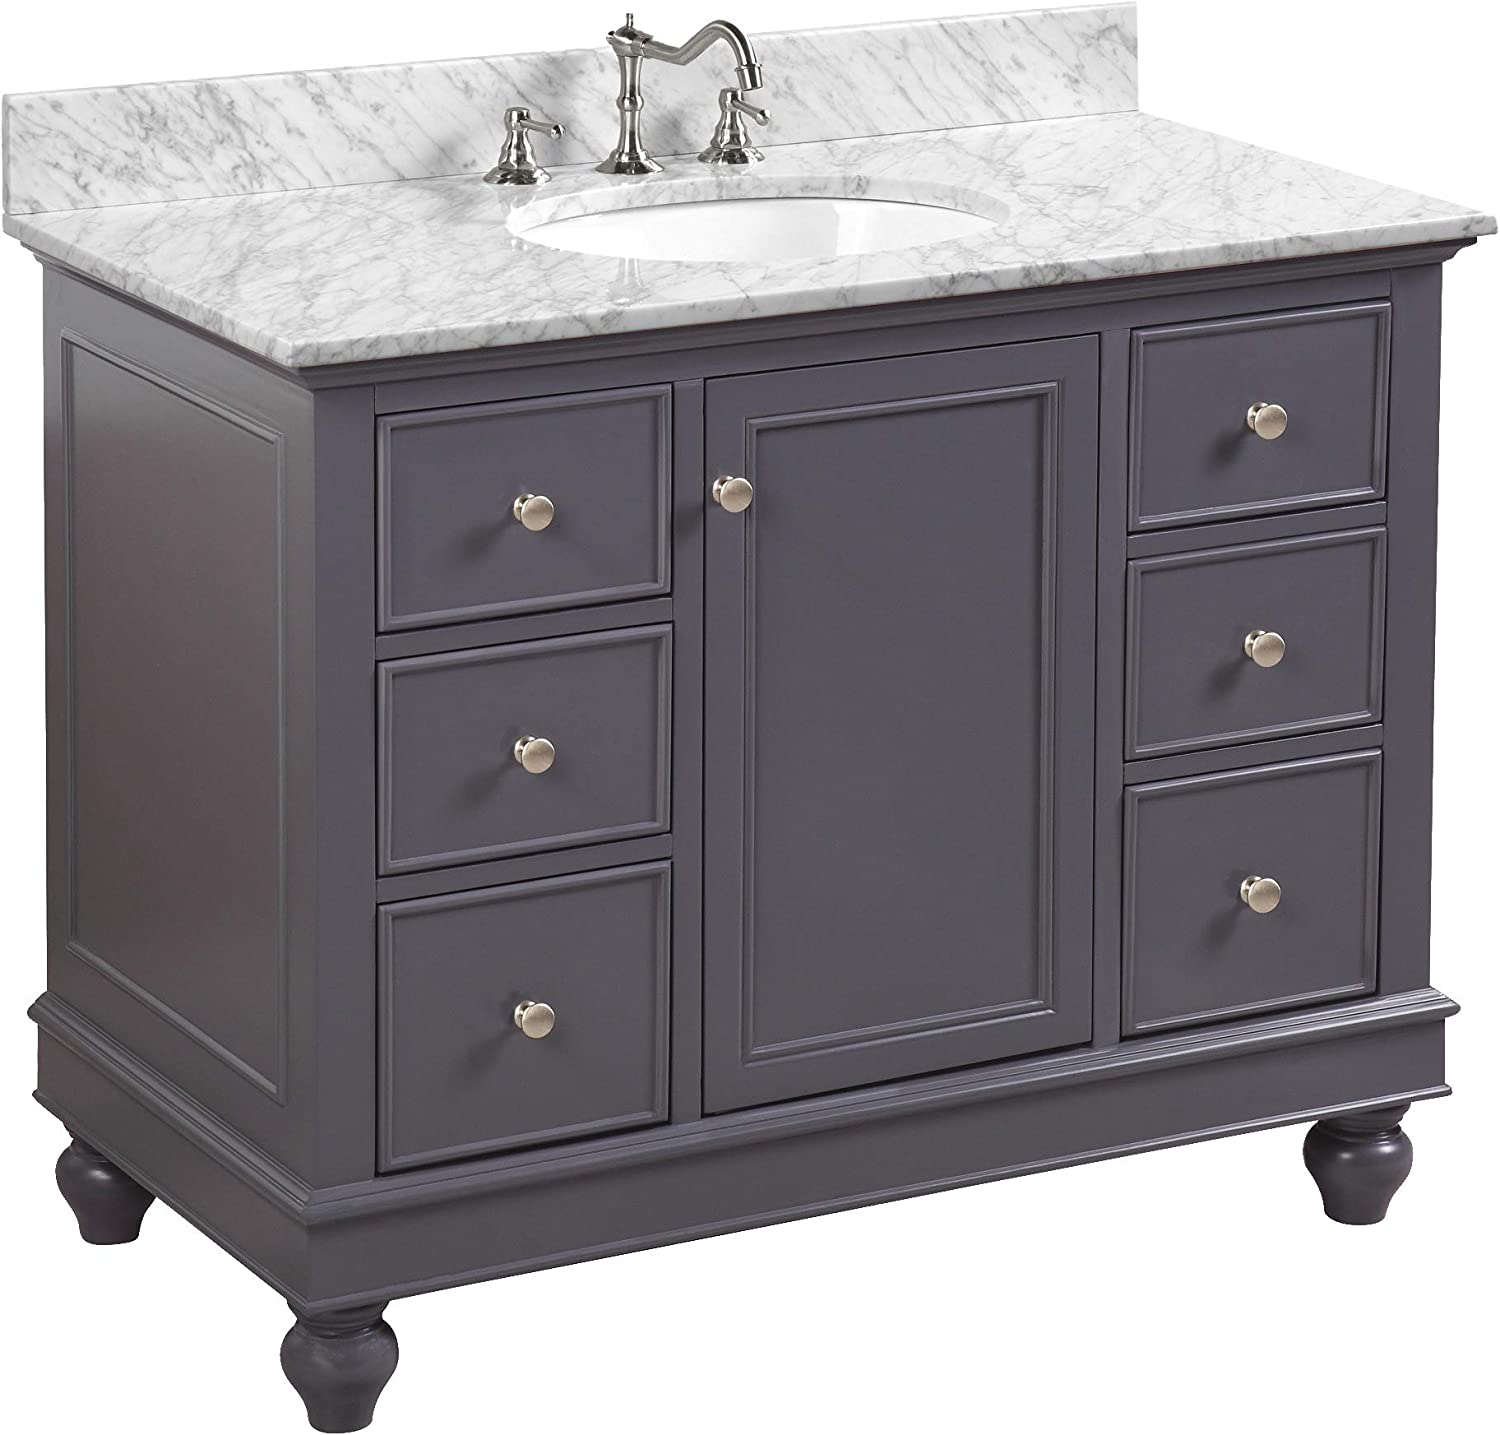 Amazon Com Bella 42 Inch Bathroom Vanity Carrara Charcoal Gray Includes Charcoal Gray Cabinet With Authentic Italian Carrara Marble Countertop And White Ceramic Sink Home Improvement